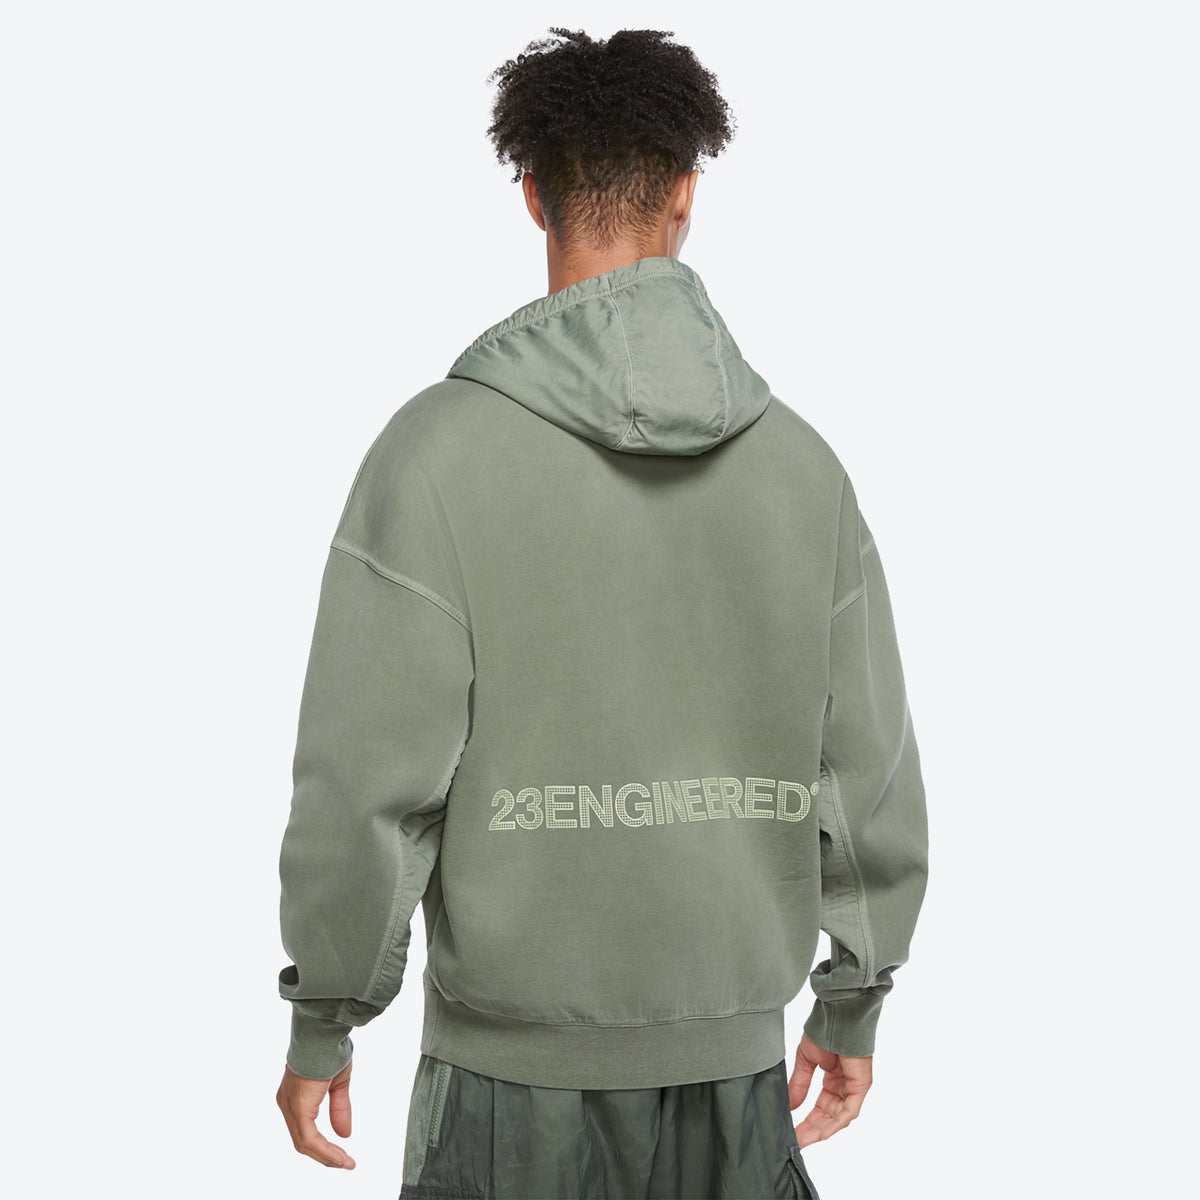 Jordan 23 Engineered Hoodie - Sage Green